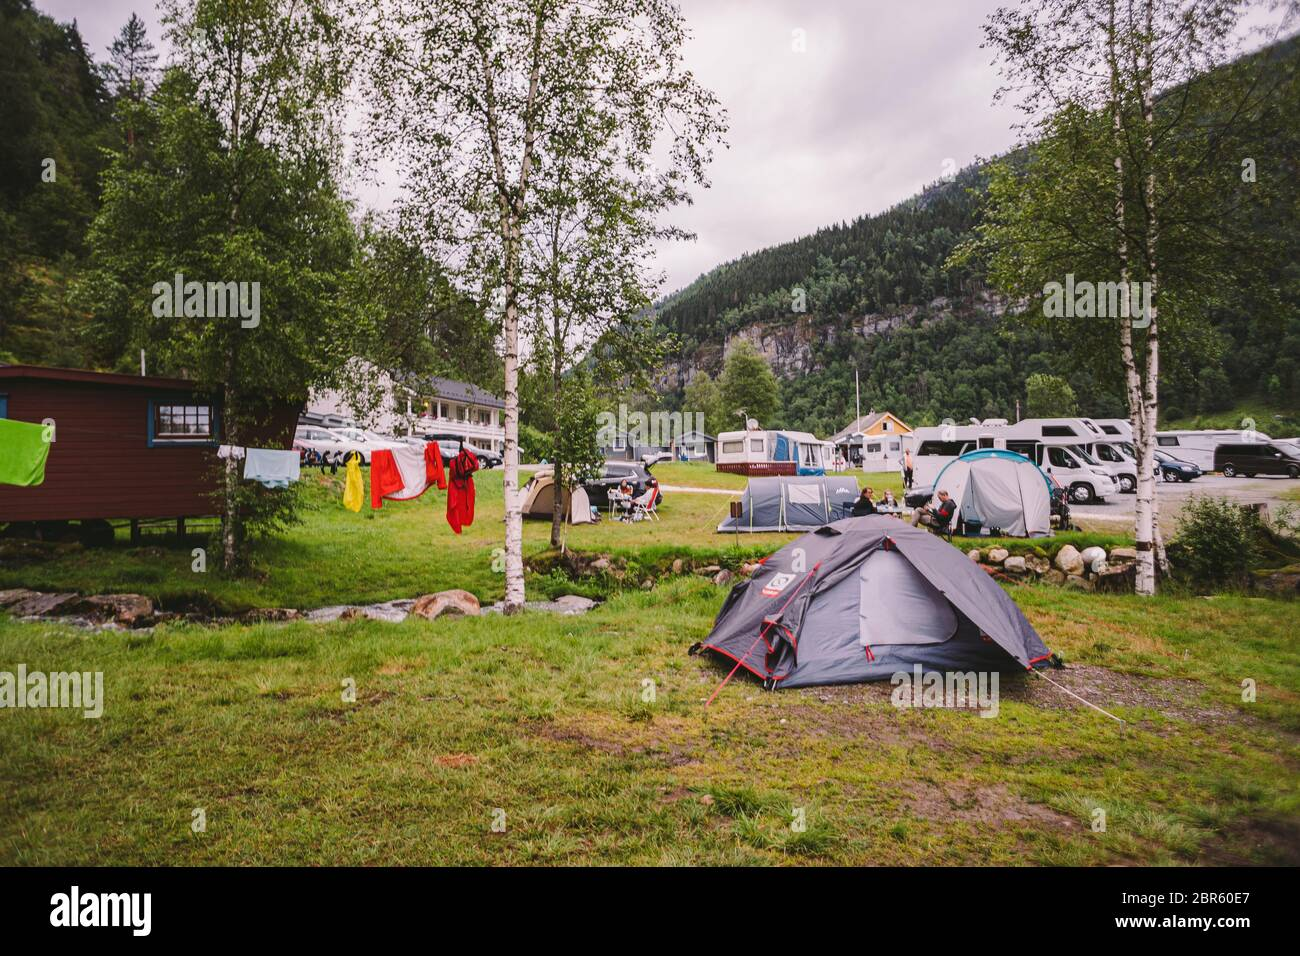 Tvinde Camping tents on the background of a waterfall Tvindefossen in Norway near Voss July 23rd, 2019. Campsite in the norwegian fjords Stock Photo